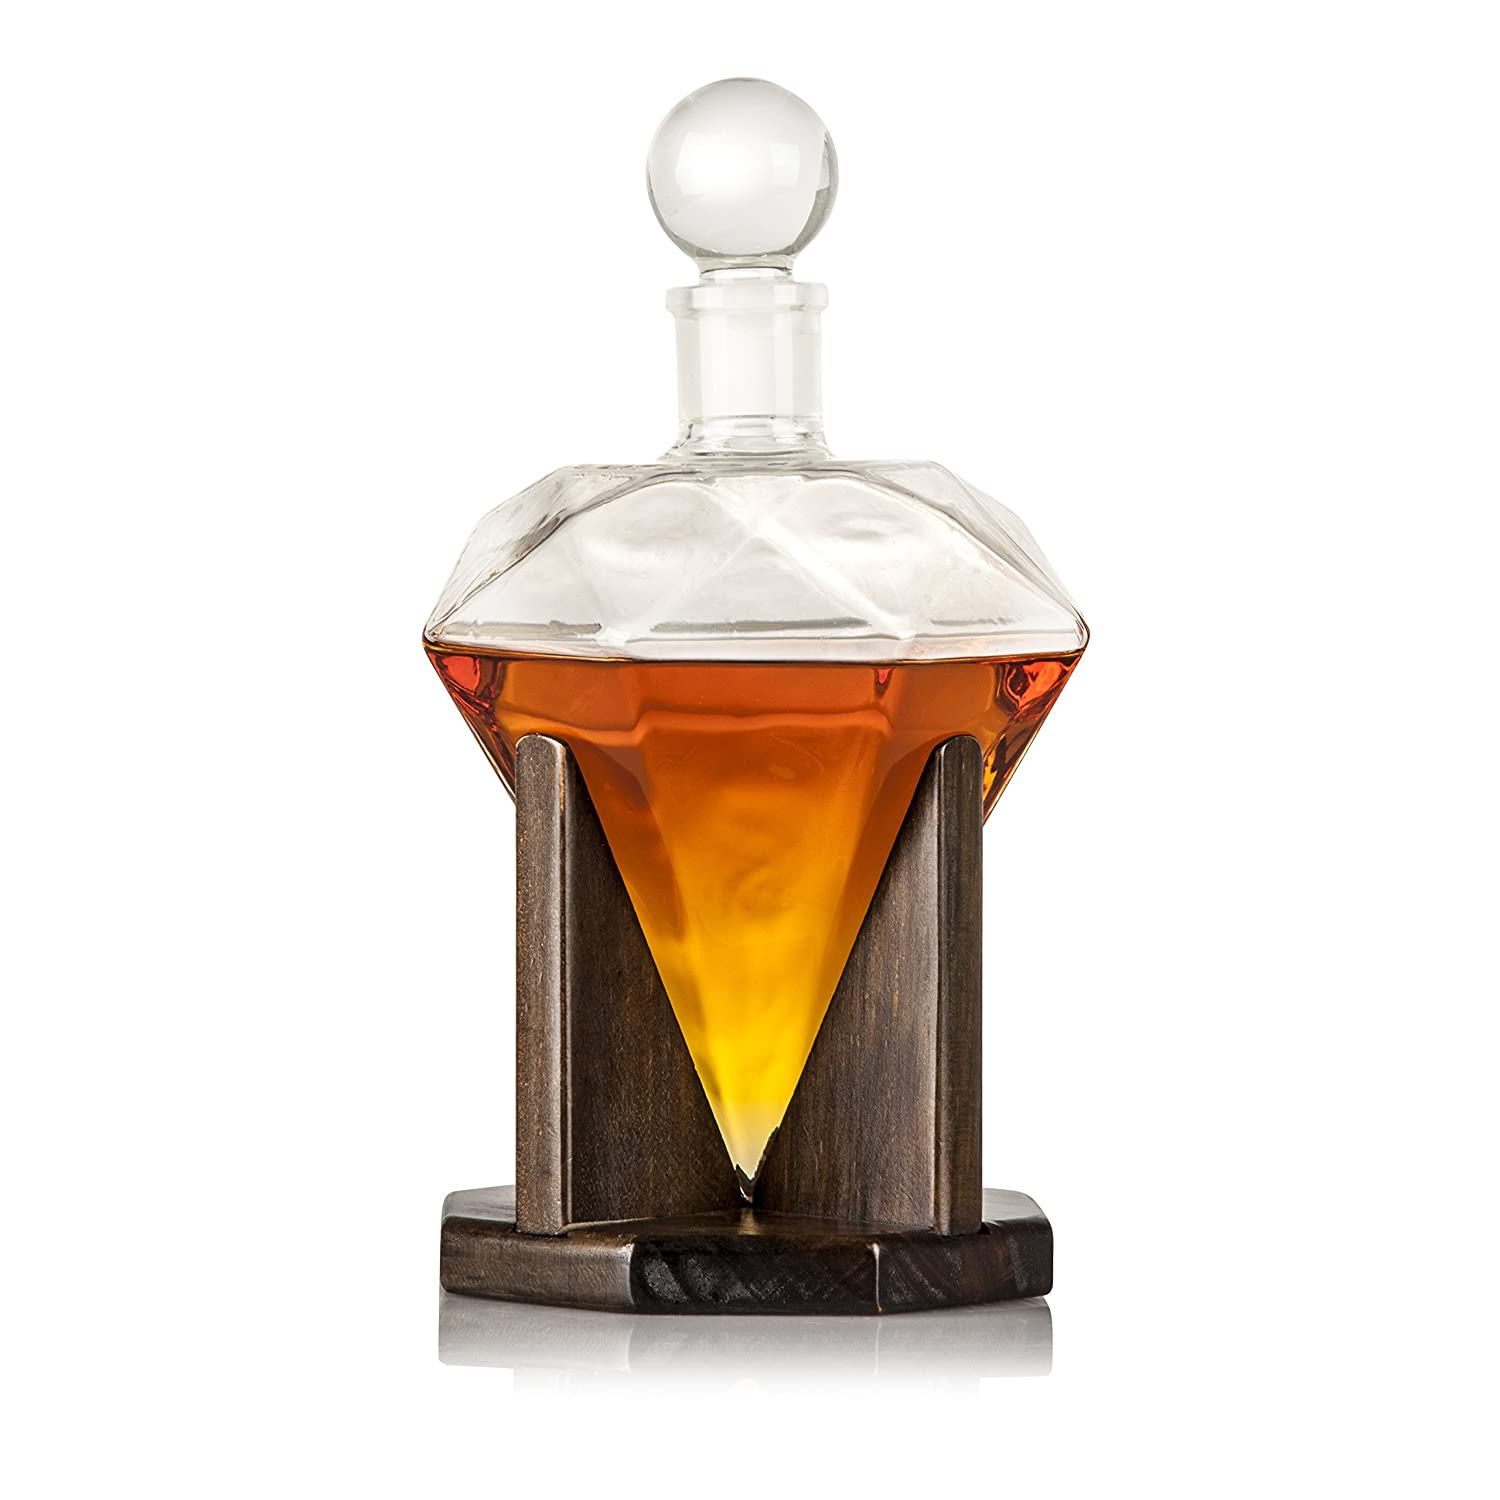 Hand Blown Diamond Whiskey Decanter: Lead Free Glass Designer Decanters with Custom Wood Stand & Airtight Stopper, Decorative Bar Set Tool for Scotch, Bourbon, Rum, Vodka, Wine, Liquors or Spirits Axiam Inc.